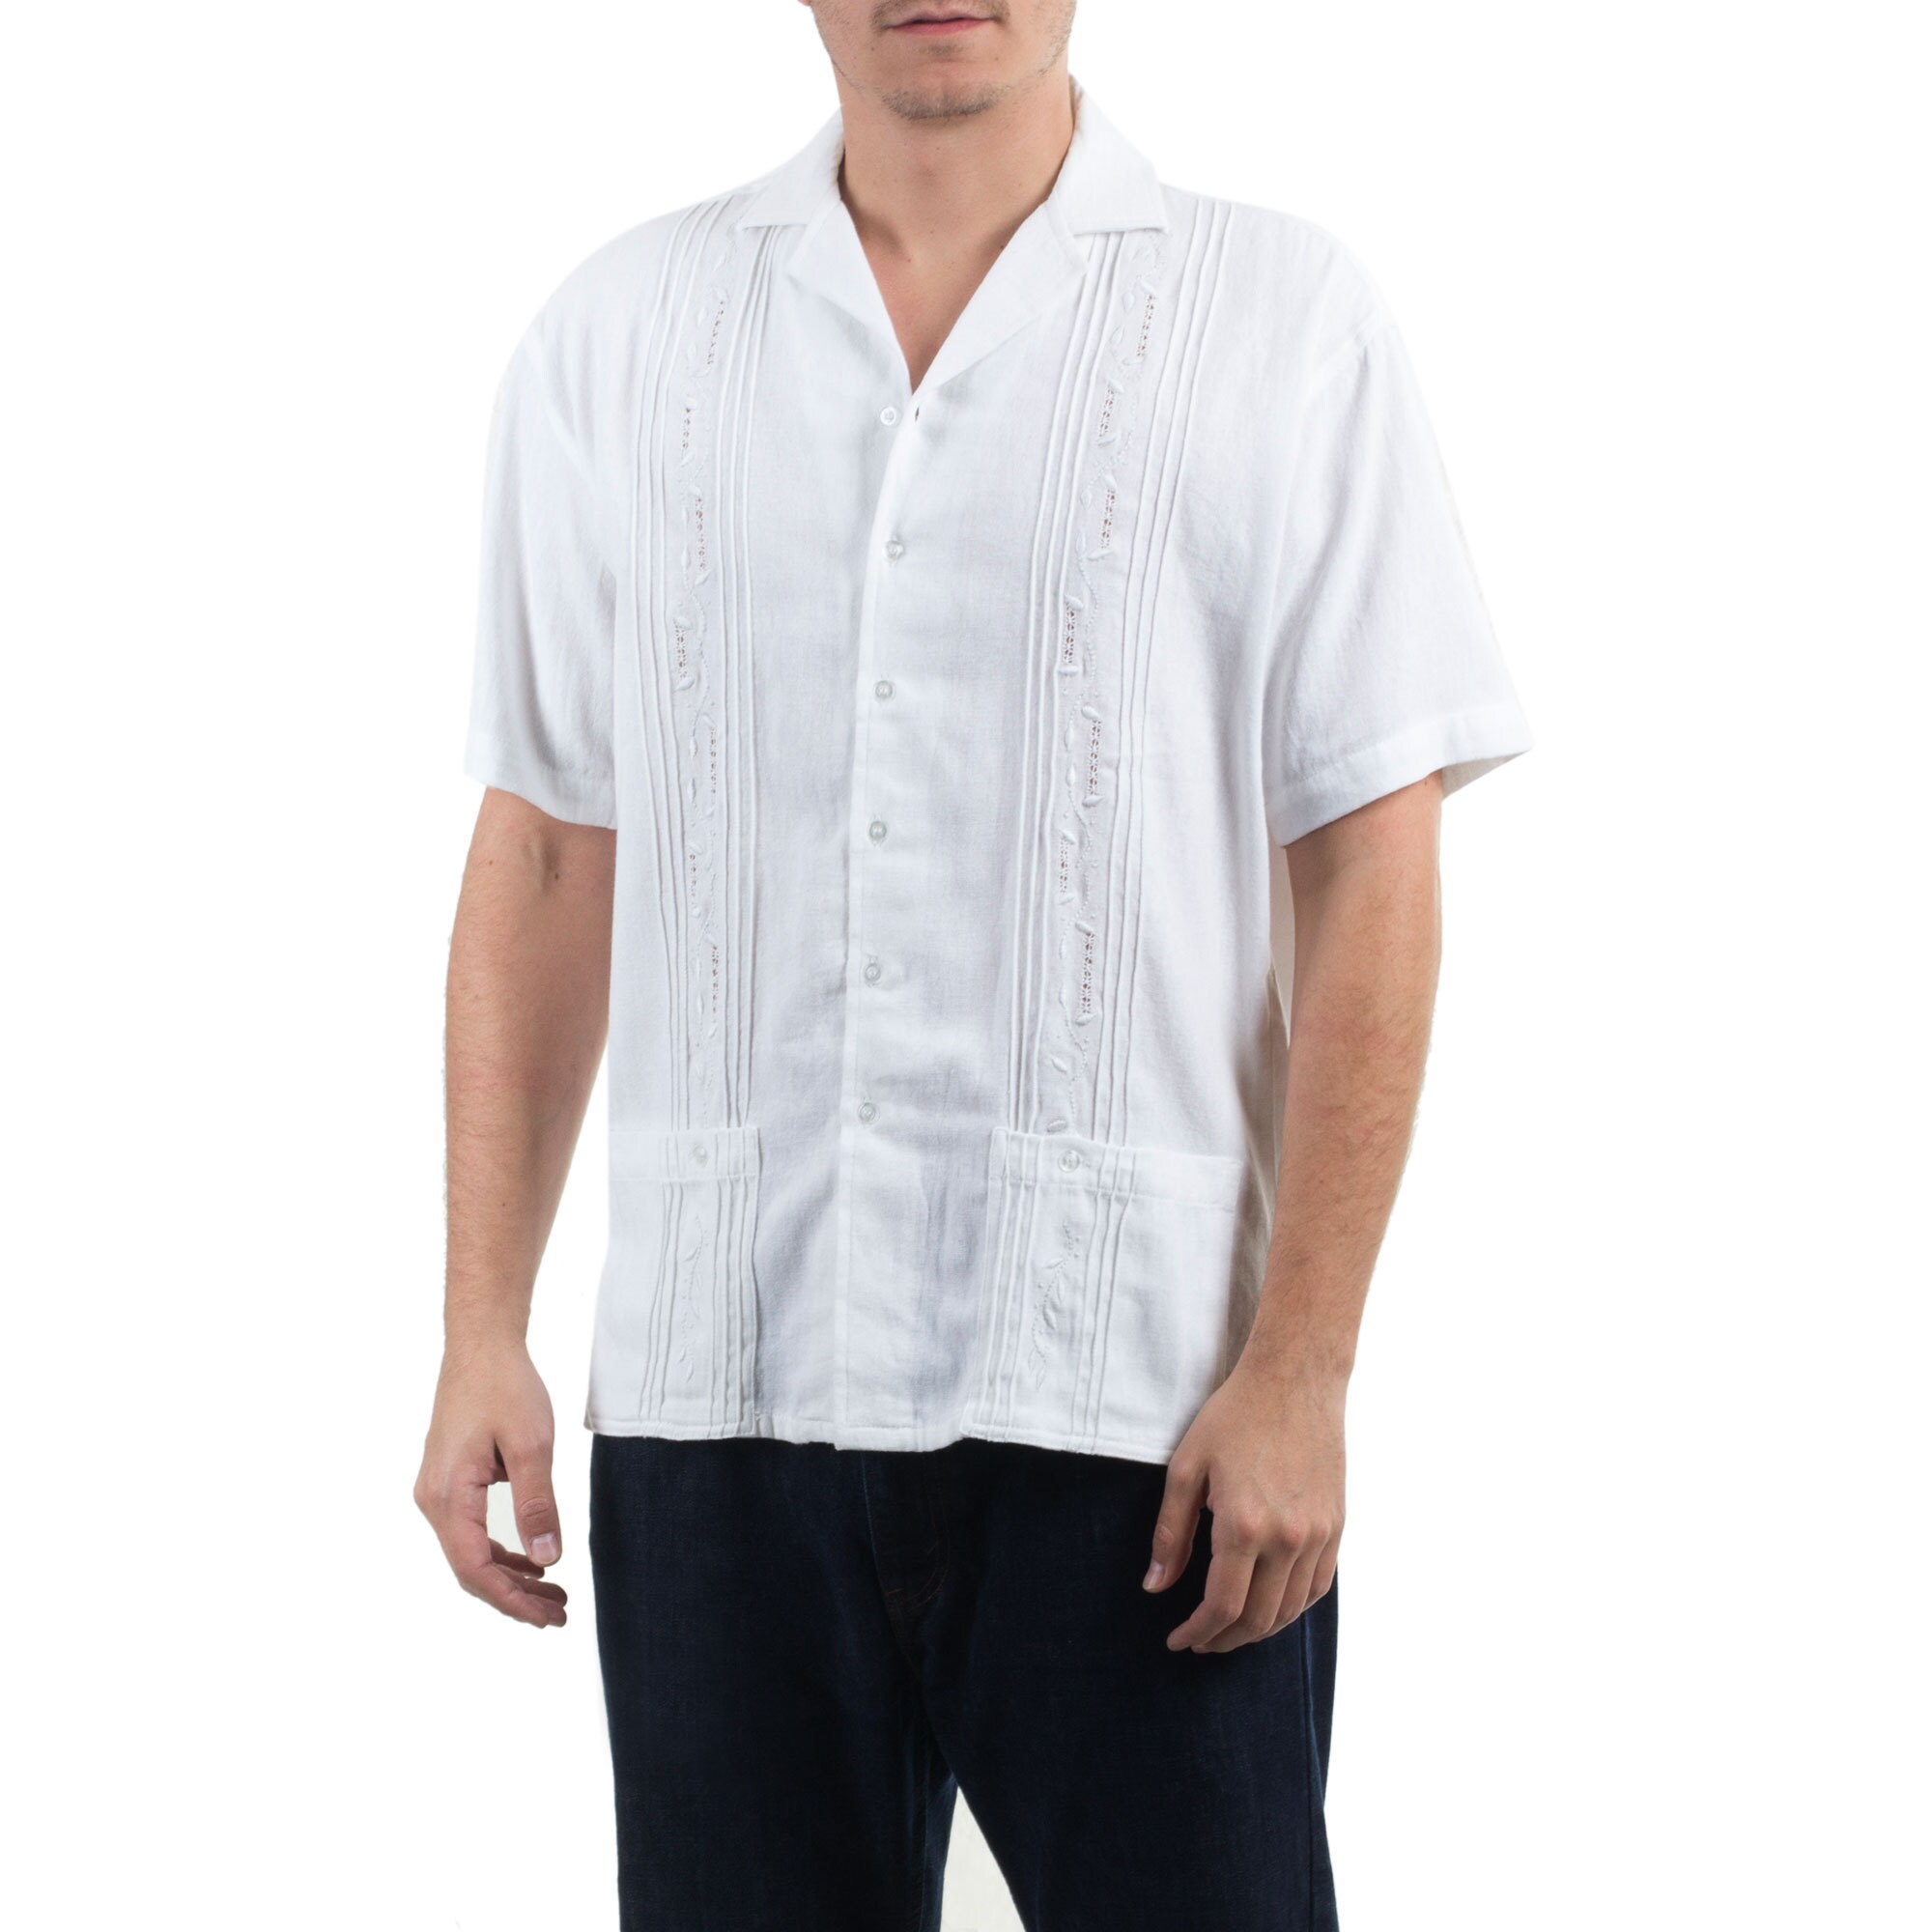 Shop Handmade Novica Mens White Ivy Cotton Shirt El Salvador